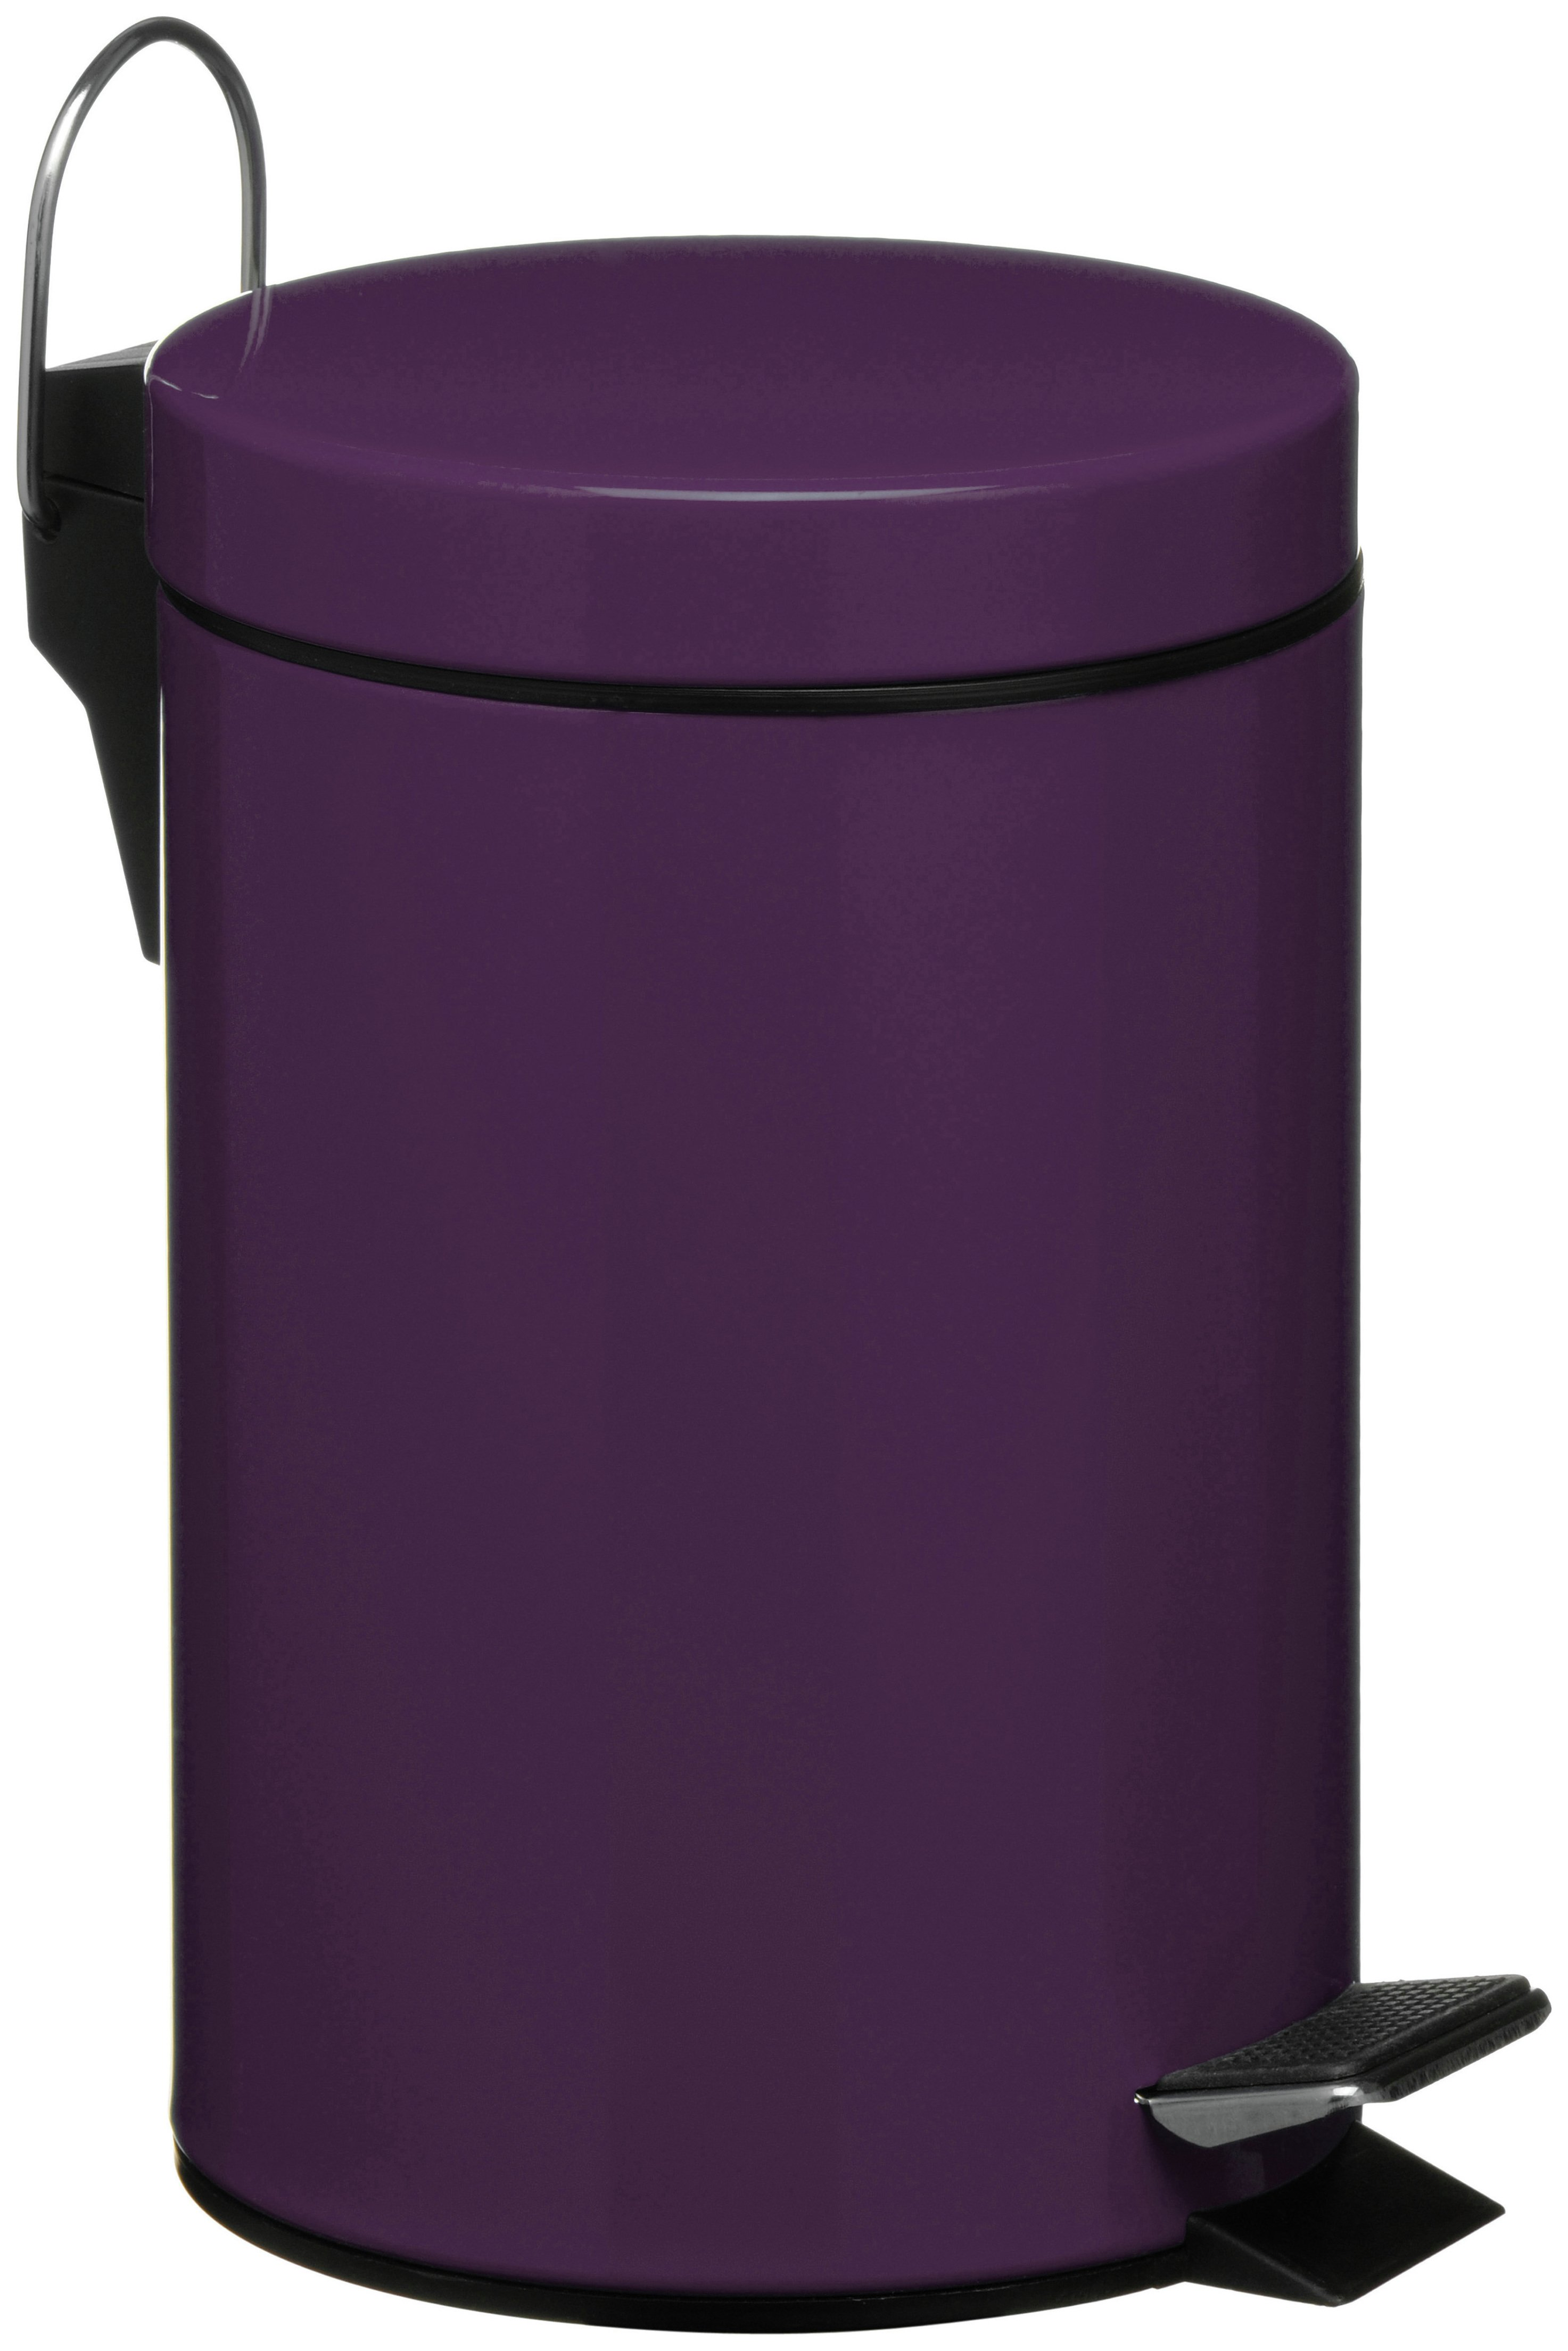 3 Litre Pedal Bin with Plastic Inner - Purple.